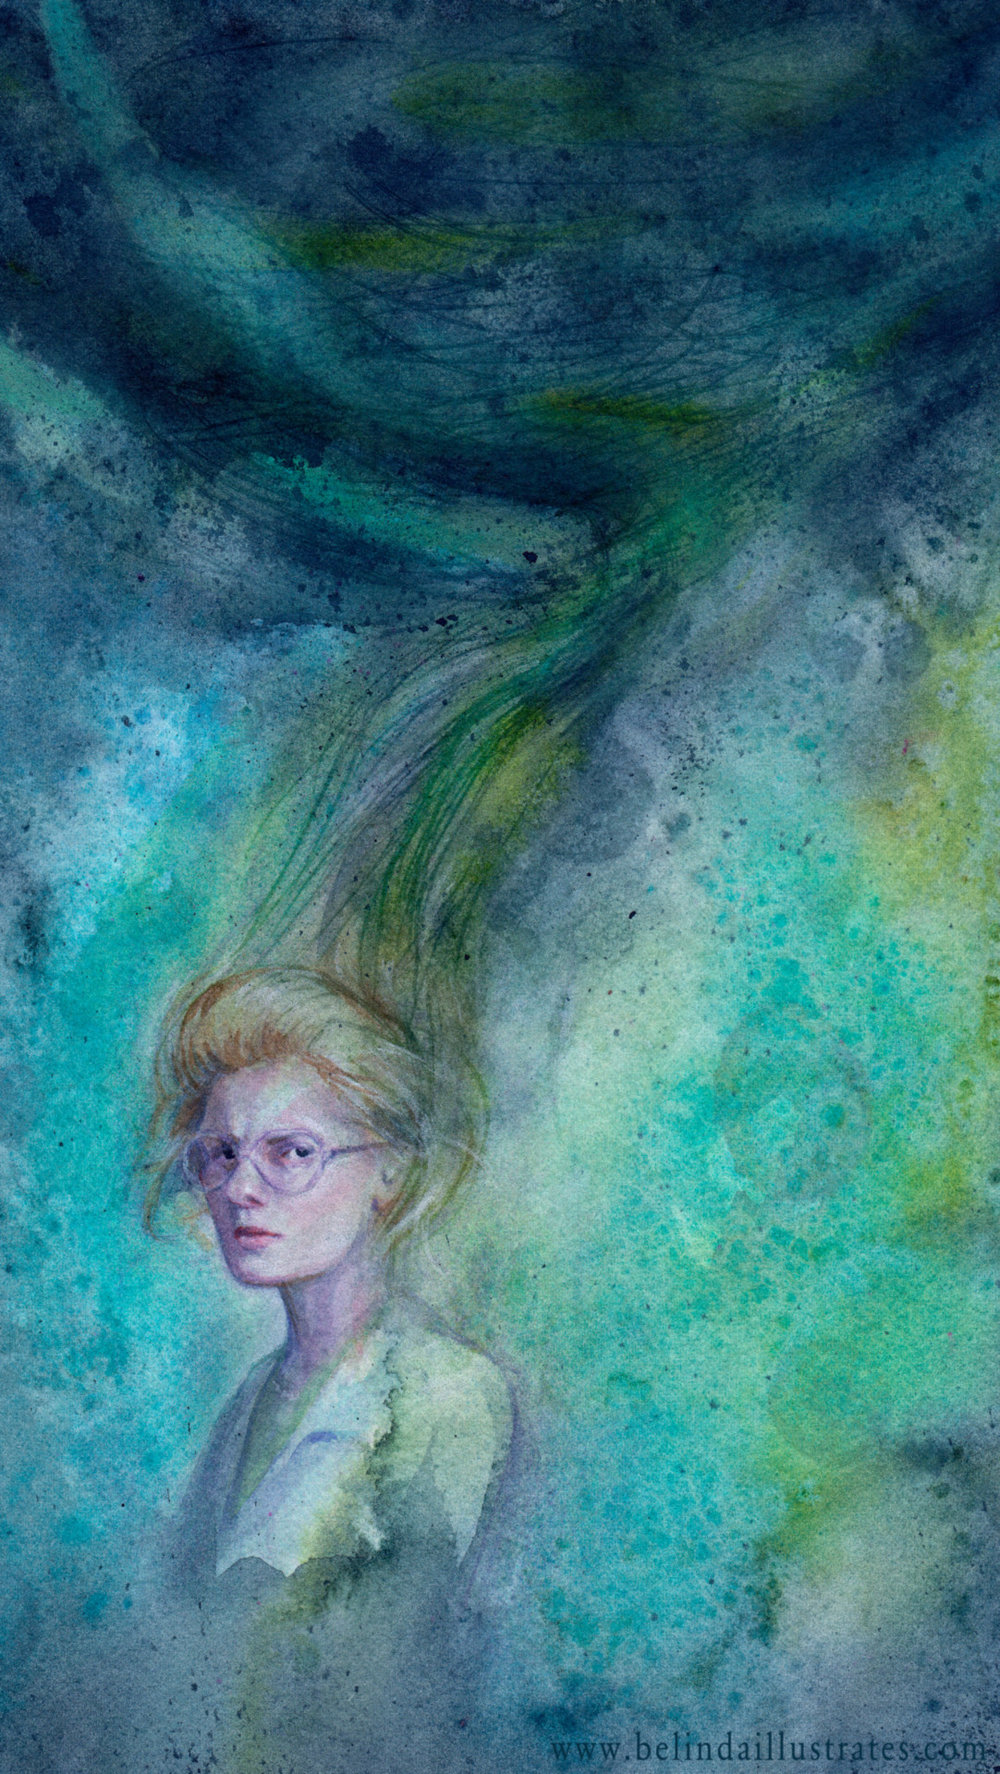 """""""Darkness"""" by Belinda Morris   Svetlana from the book and the movie """"Nightwatch"""" curses herself creating a vortex that can destroy the world.   www.belindaillustrates.com   Watercolour and Gouache  Created for #MonthofFear week 5 #Darkness"""